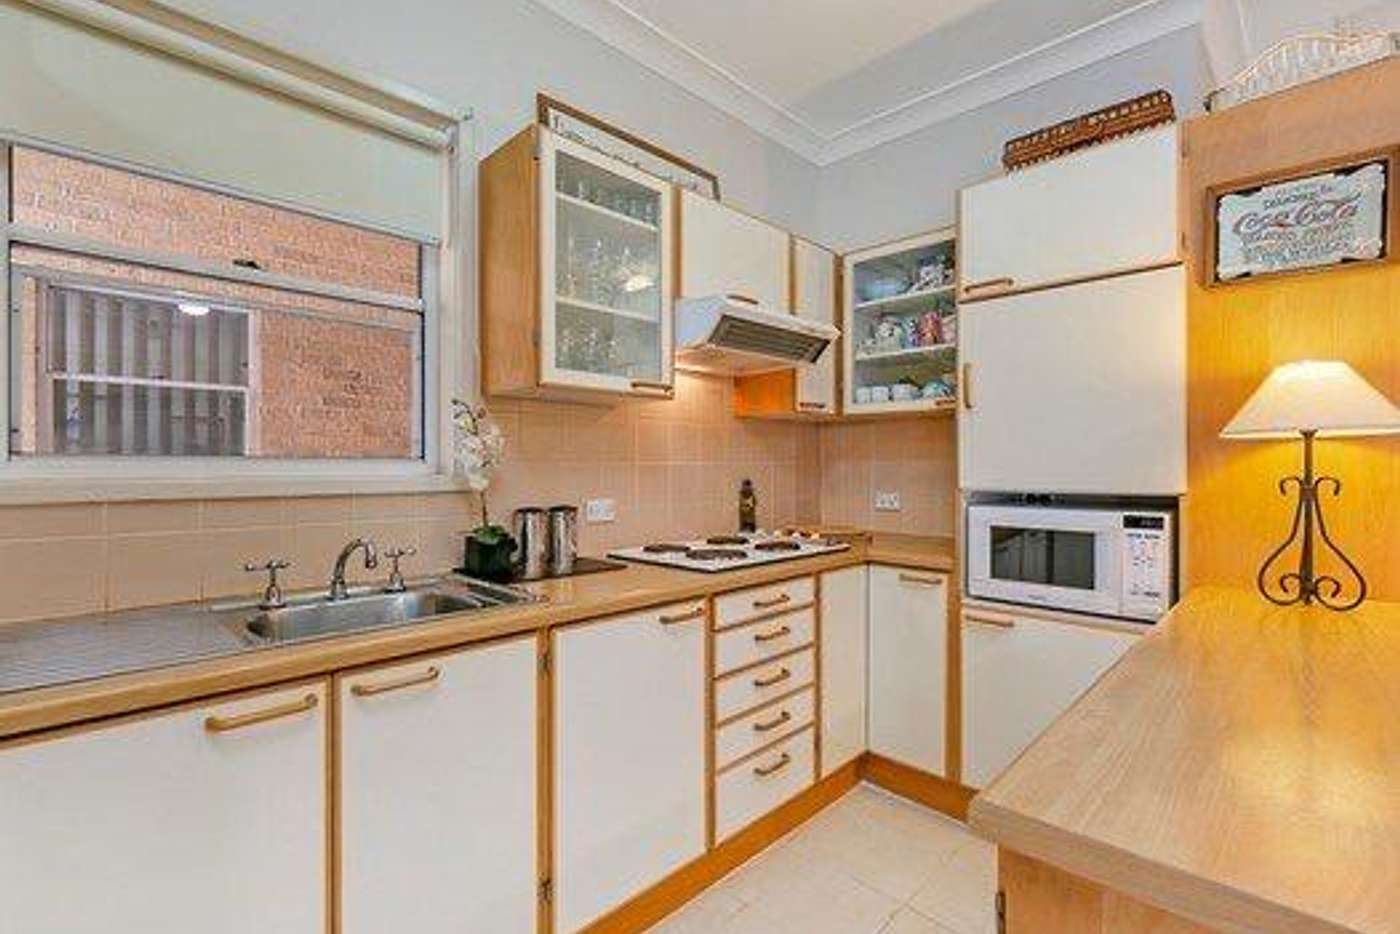 Main view of Homely apartment listing, 49/15-17 wyoming Avenue, Oatlands NSW 2117